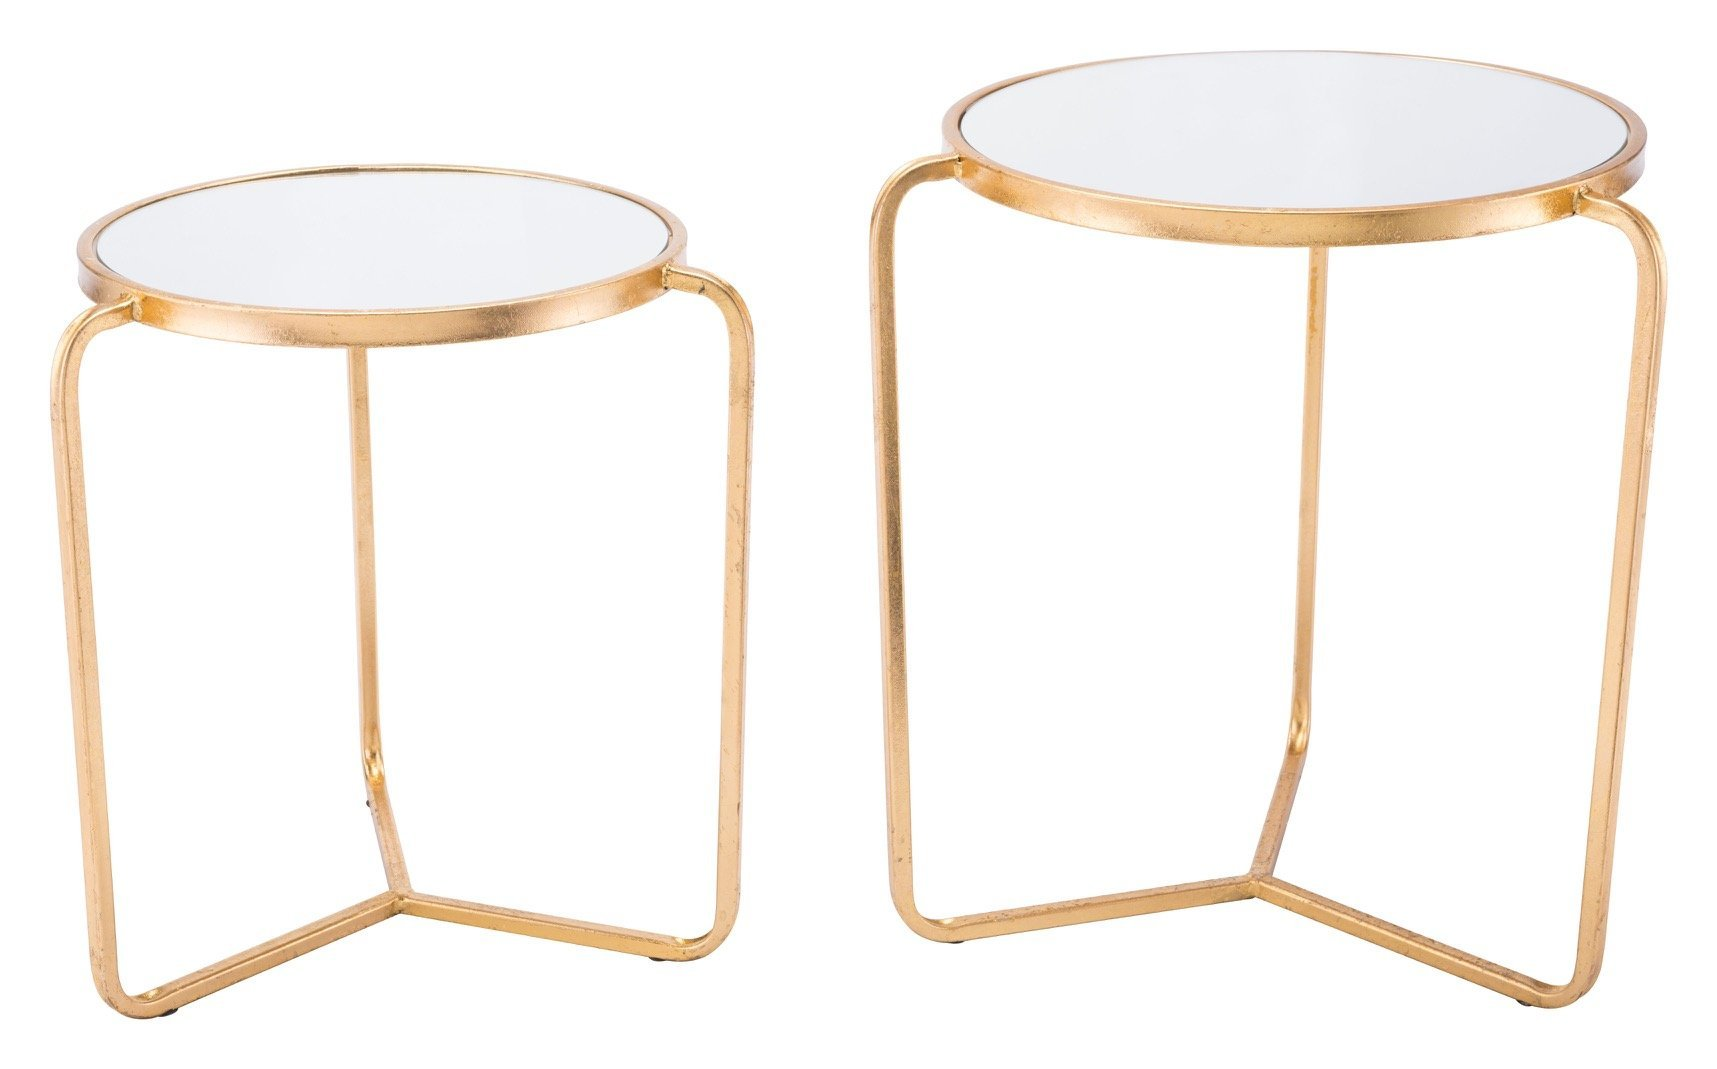 set tripod accent tables gold with mirrored top side alan decor table and mirror pottery barn lamp small console lamps mid century modern dining chairs malm folding tray baby